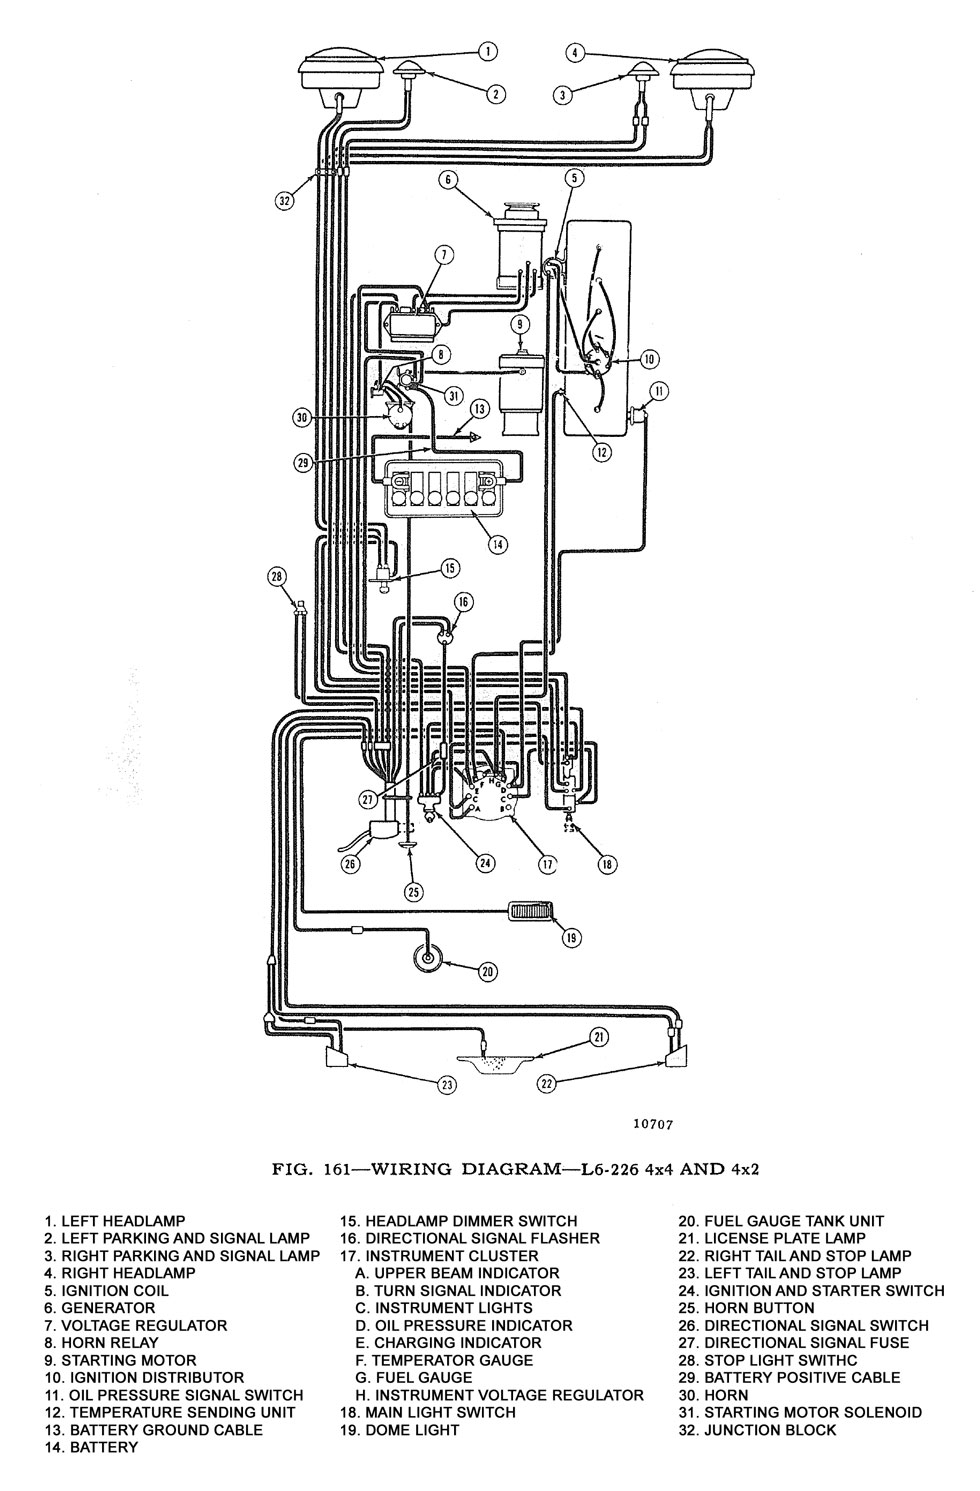 medium resolution of wiring diagram l6 226 4x4 and 4x2 willys starter diagram 57 willys wiring diagram